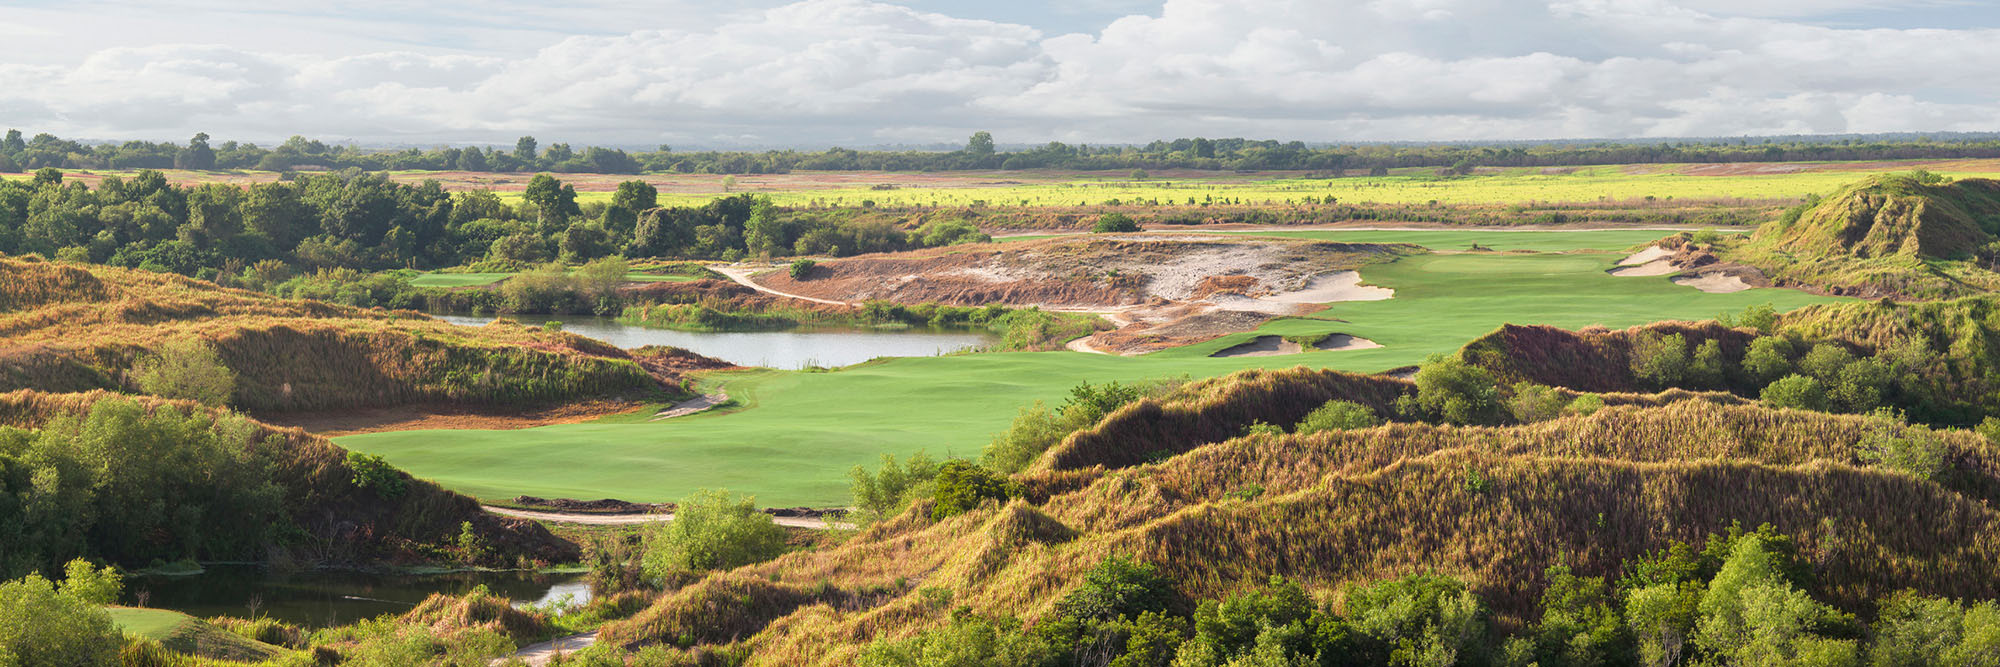 Golf Course Image - Streamsong Red No. 1